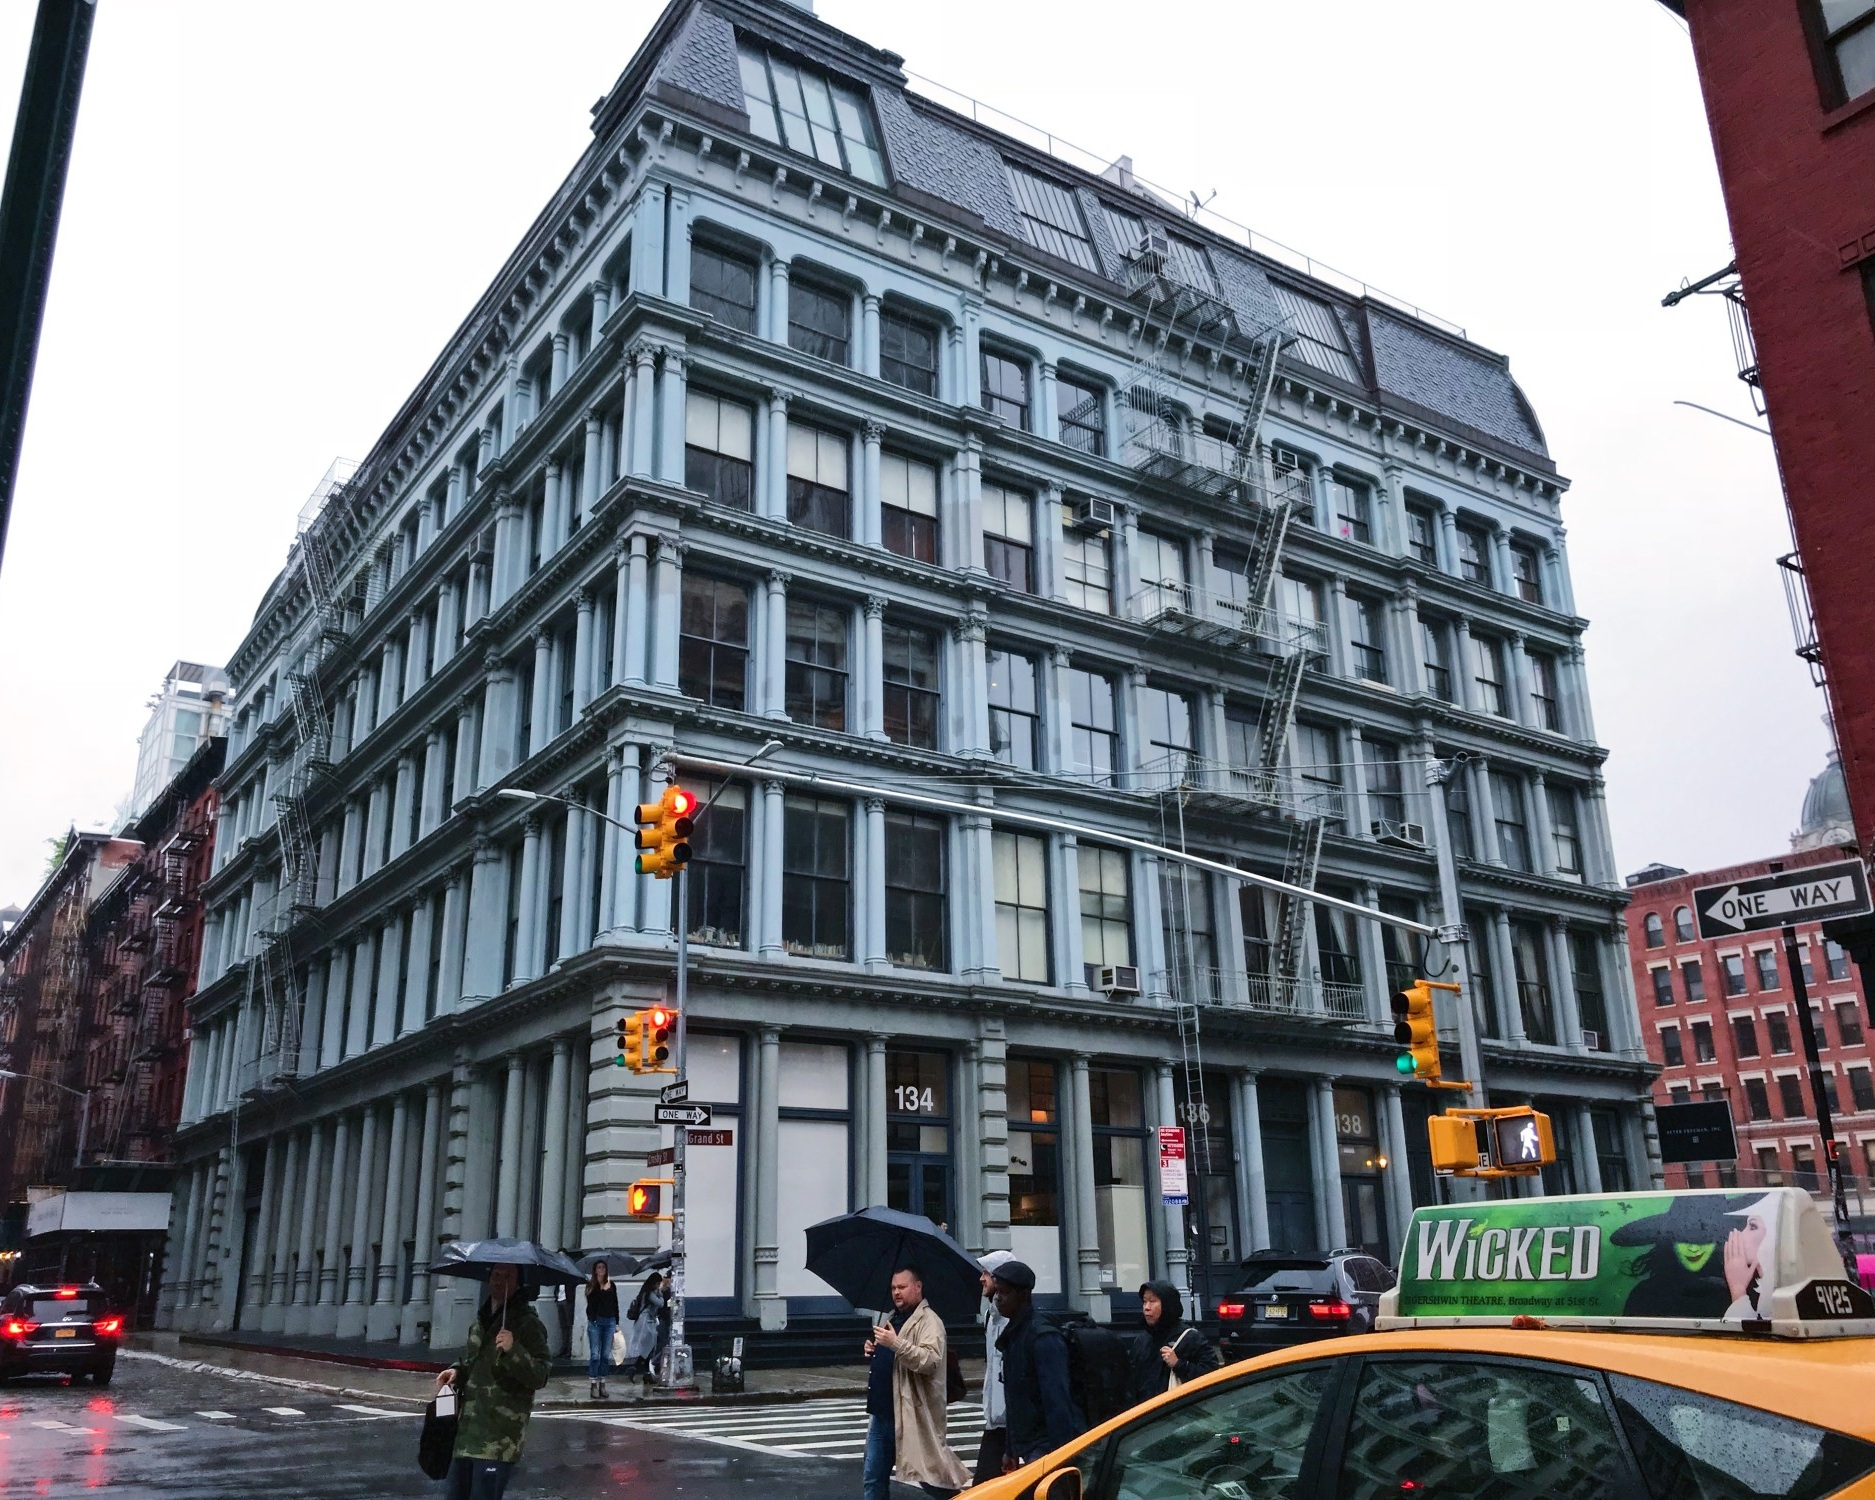 Loci Selected to Restore Cast Iron Building in SoHo - December 2017Loci is selected to restore the existing cast iron façade at 136-140 Grand Street. The building is in the SoHo-Cast Iron Historic District Extension and was built in 1900.